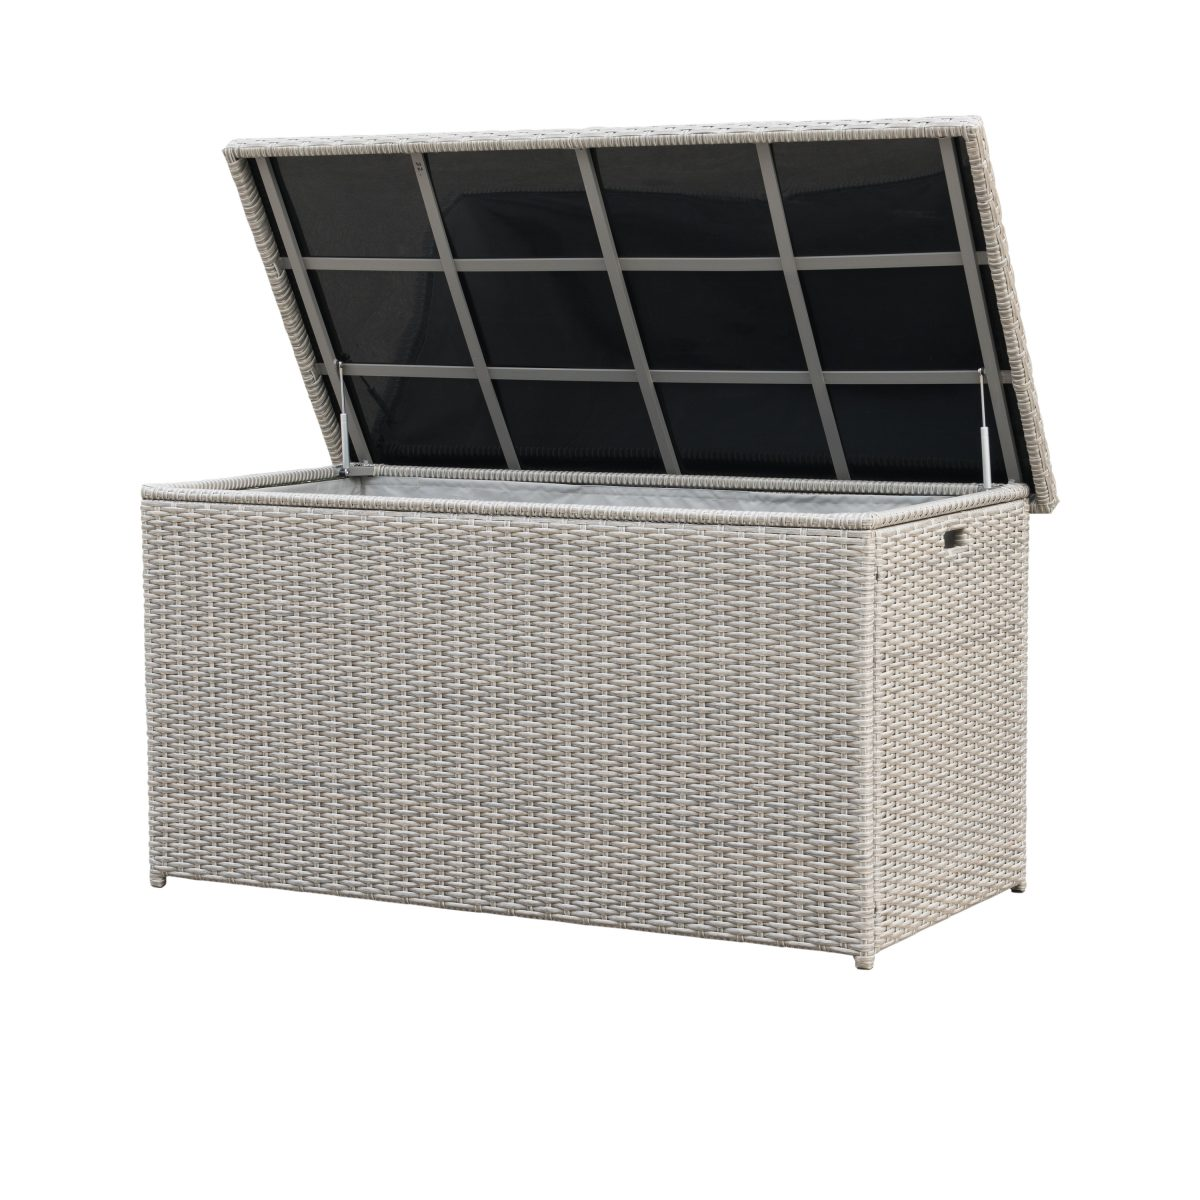 Sirio Grey Color Patio Storage Box